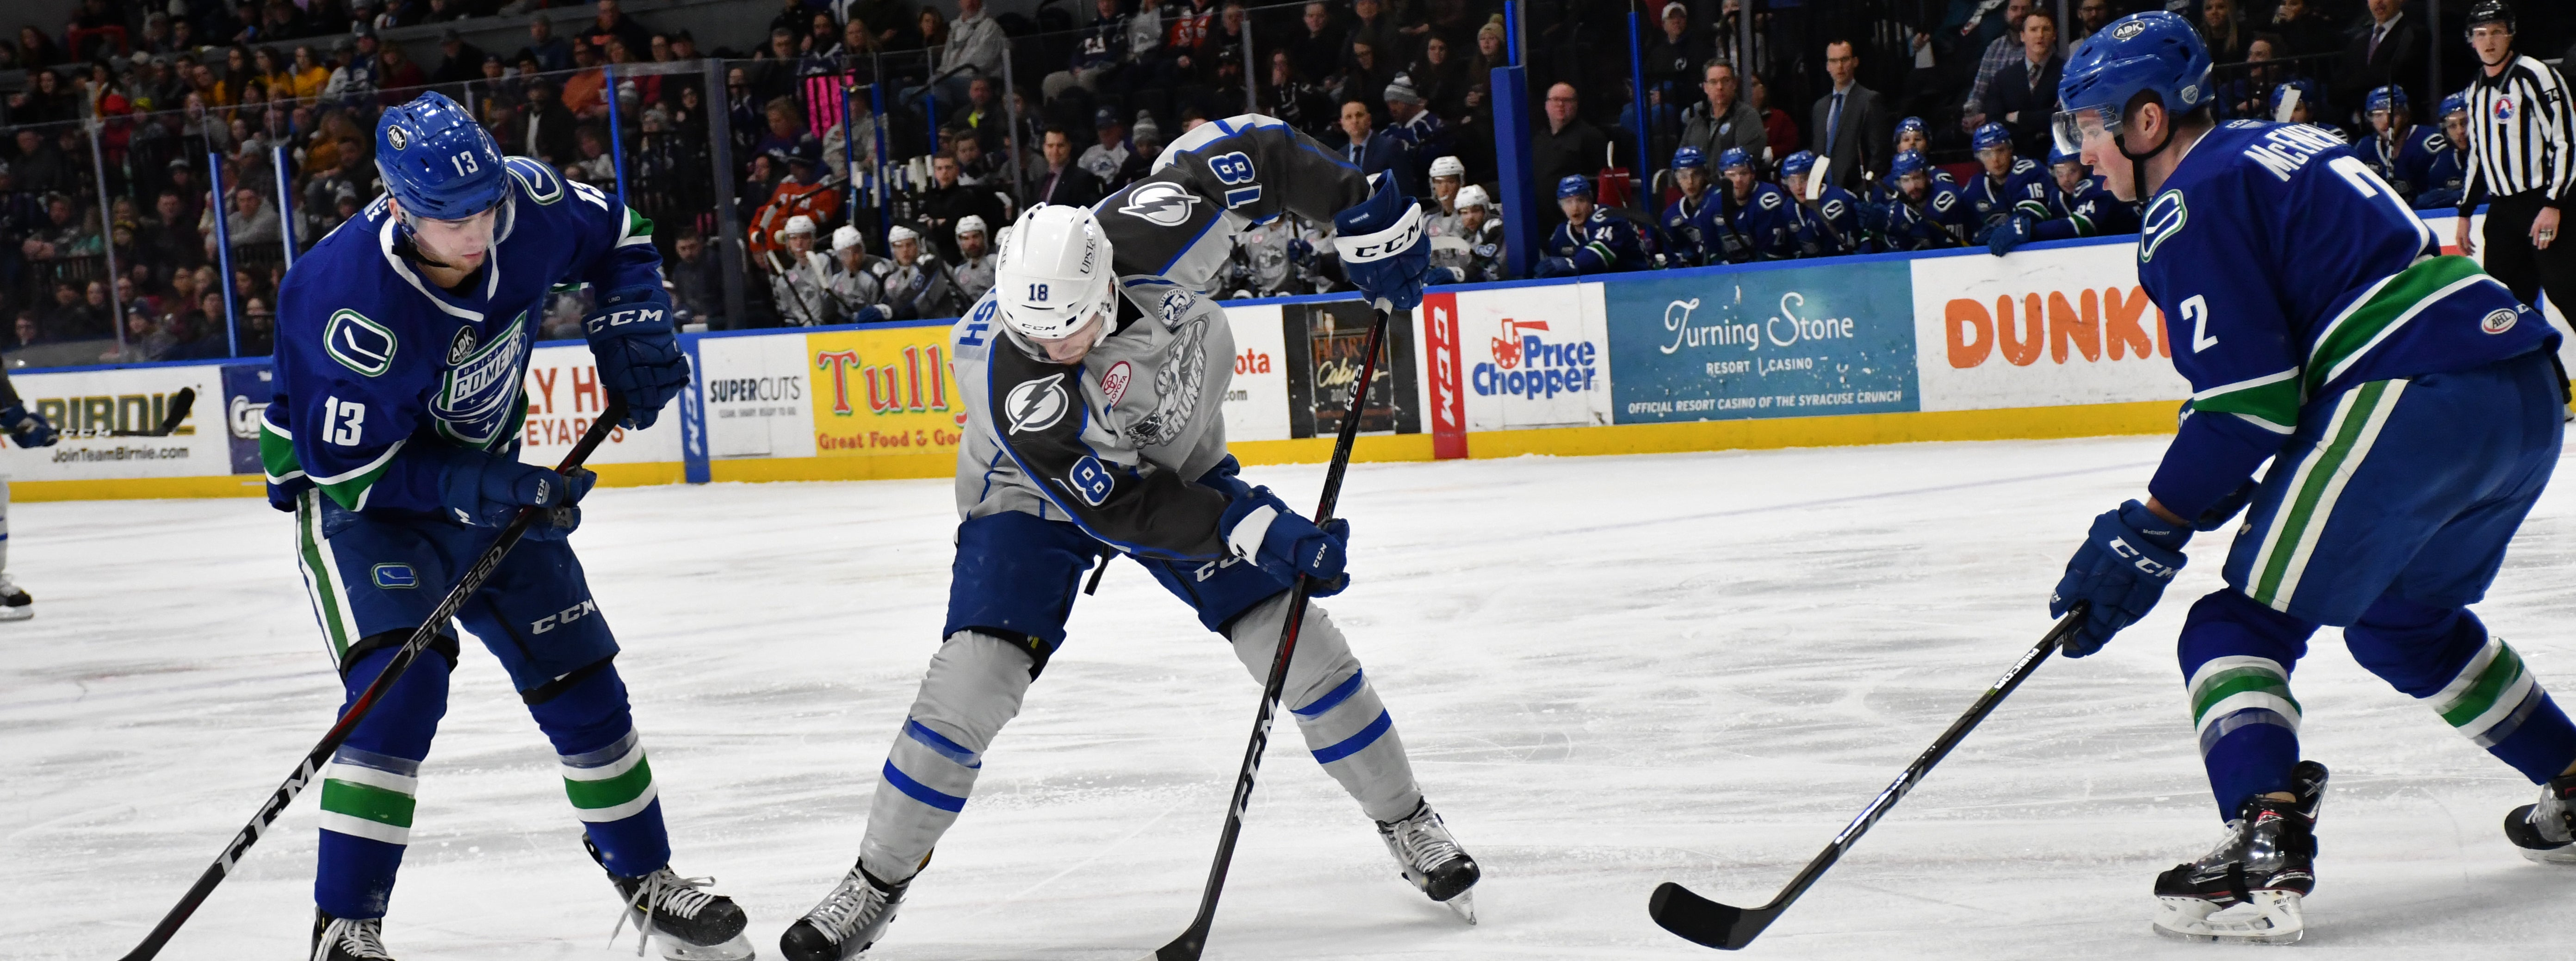 COMETS SHUTOUT BY CRUNCH ON ROAD